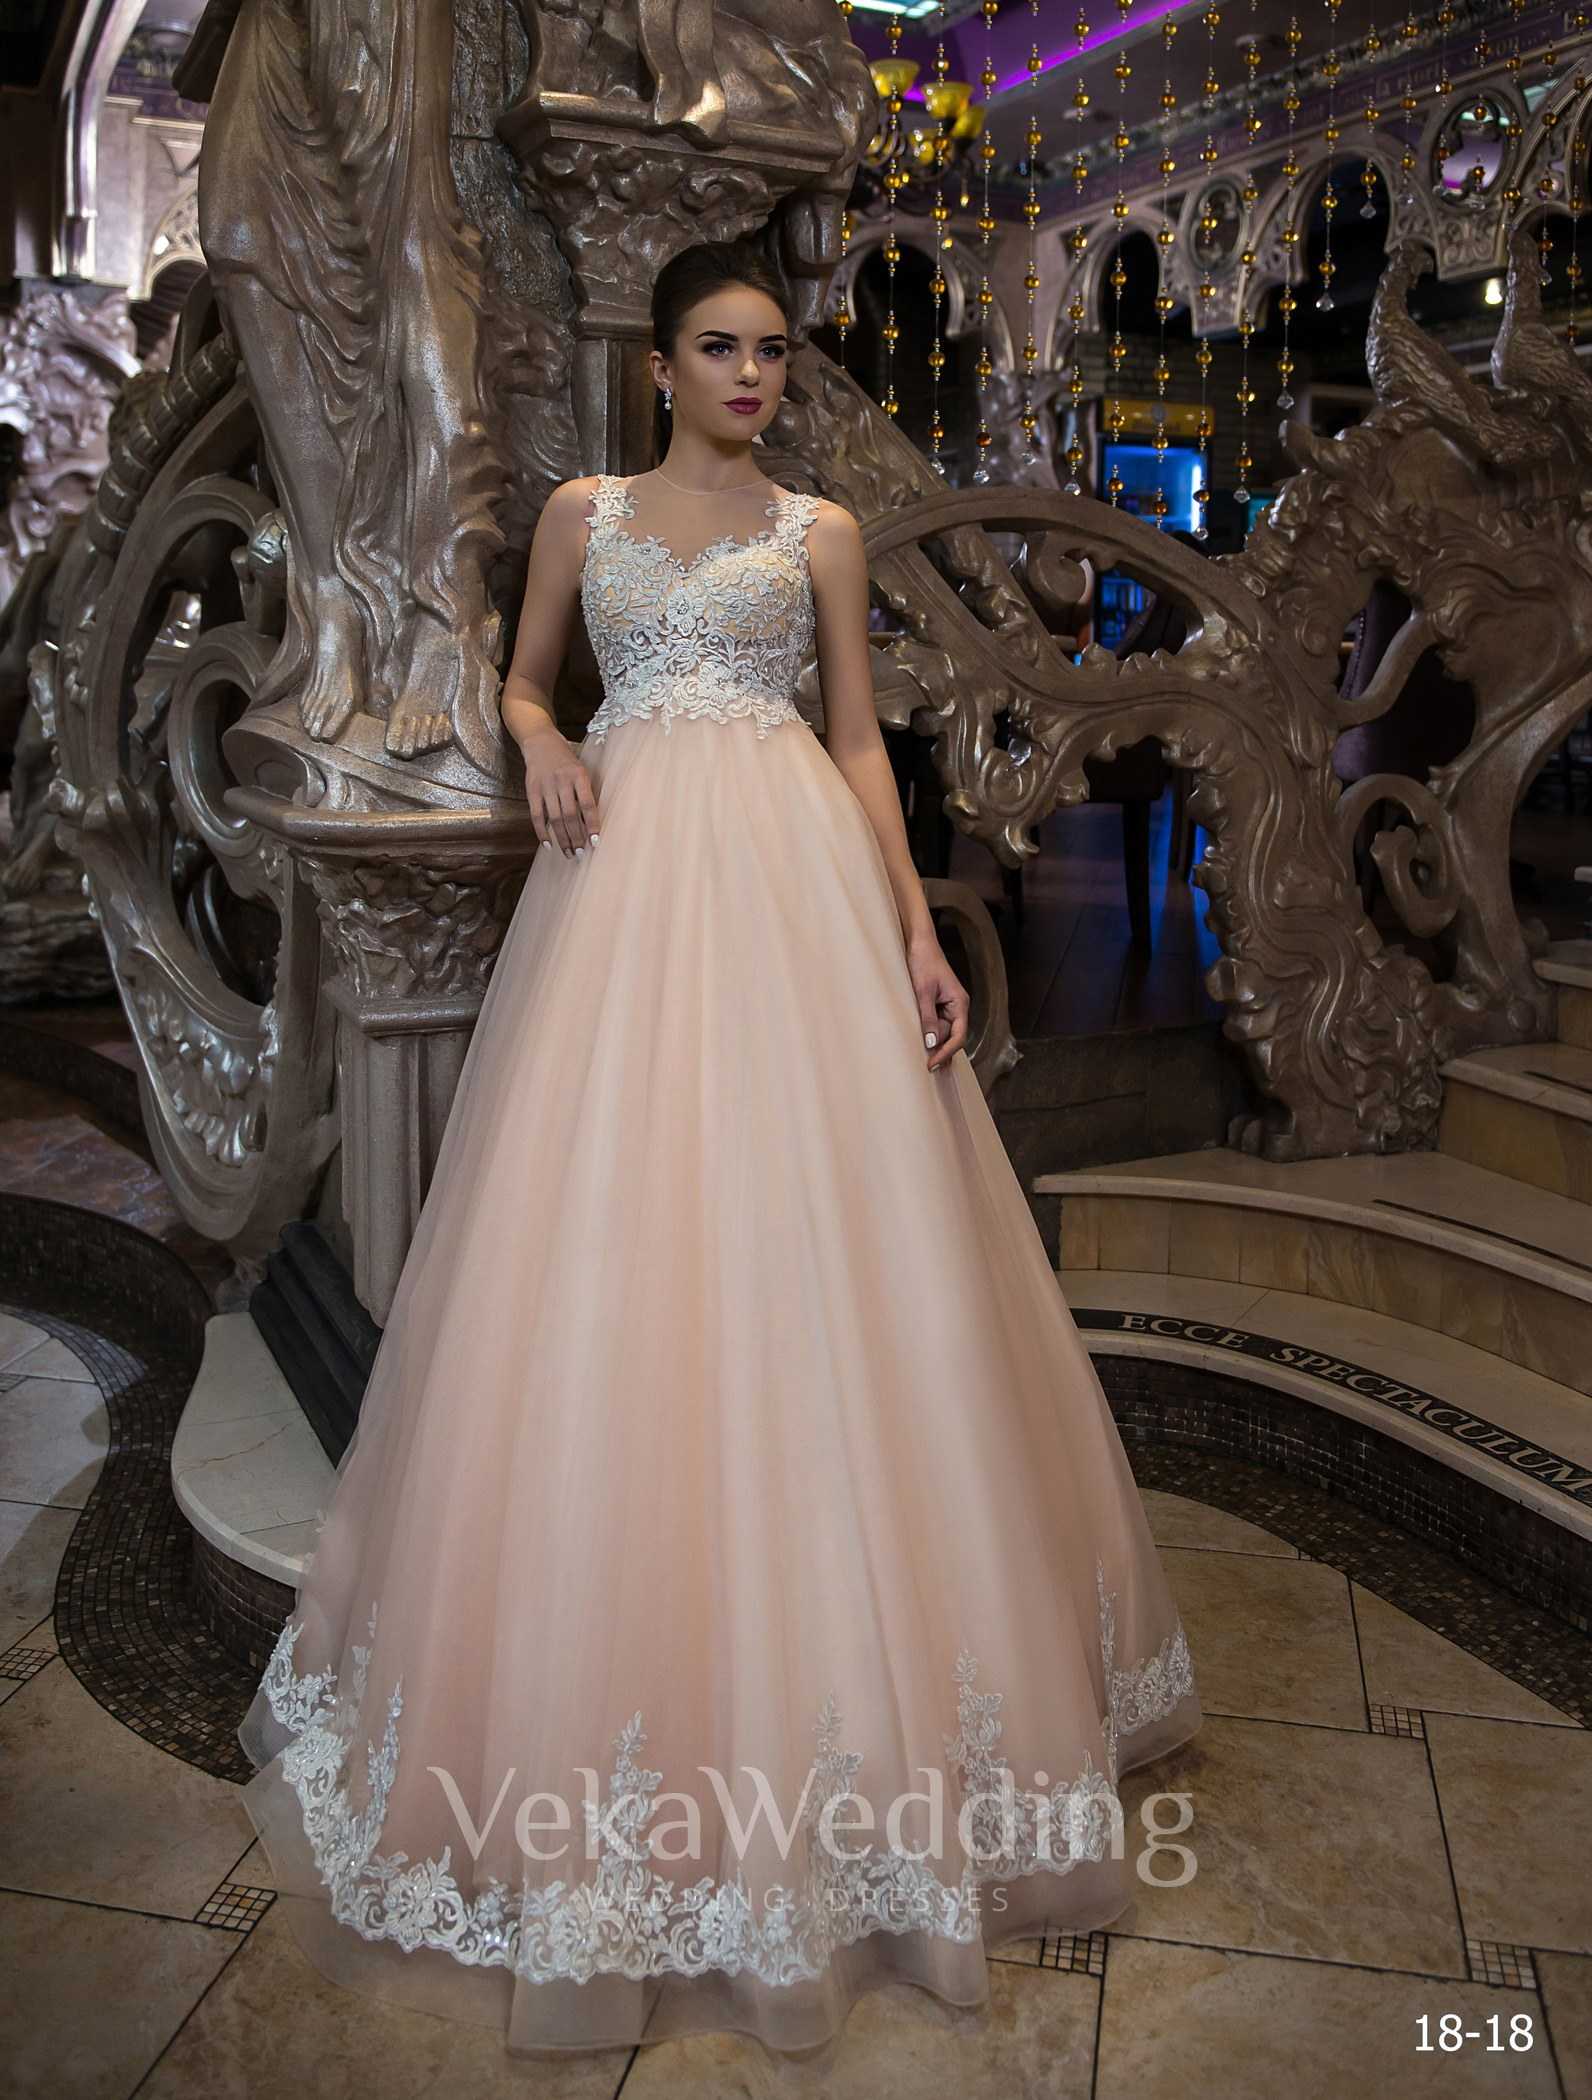 https://vekawedding.com/images/stories/virtuemart/product/18-18-------(1).jpg